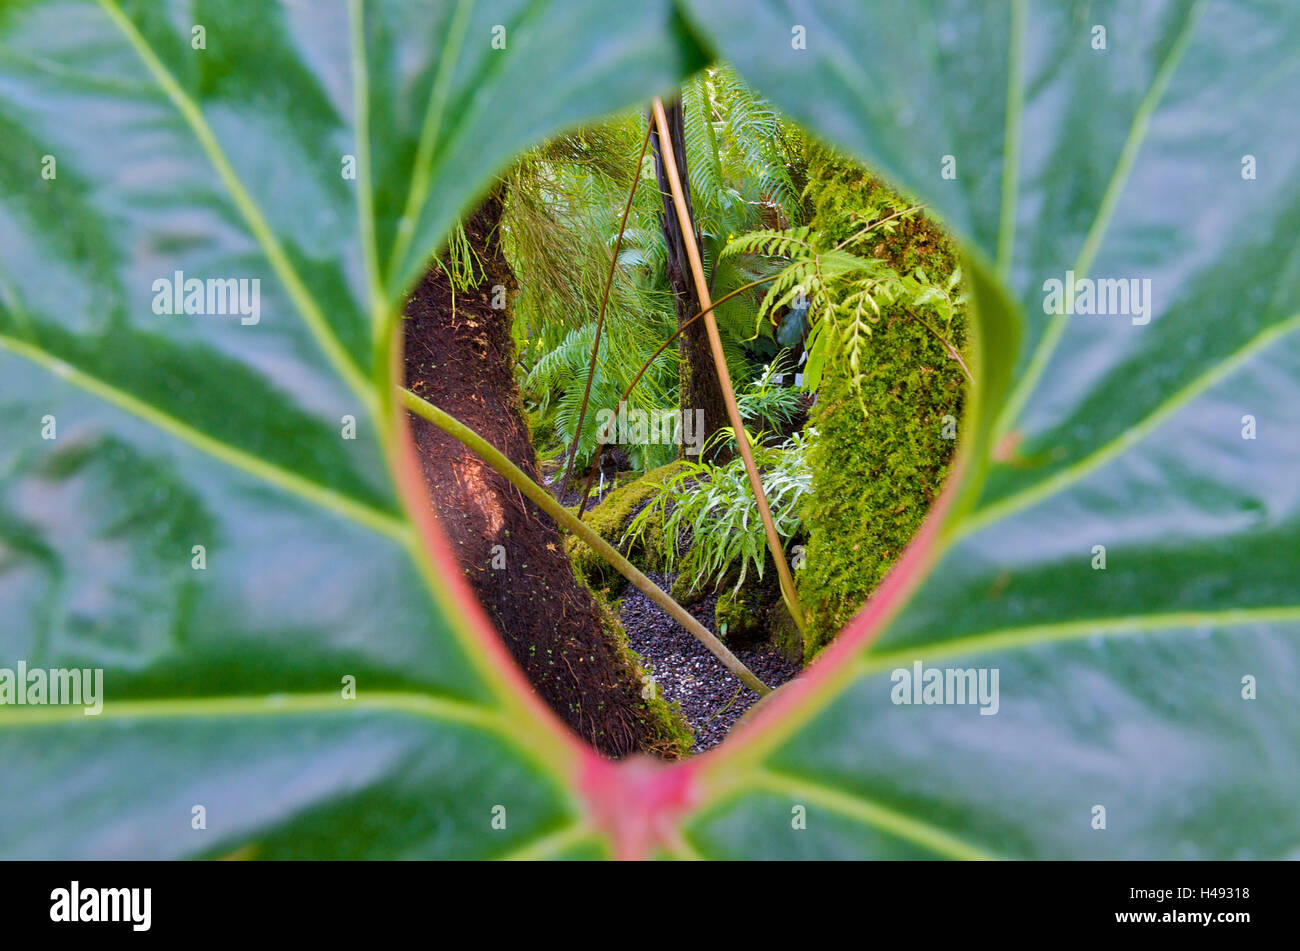 View through leaf in a primeval forest, - Stock Image